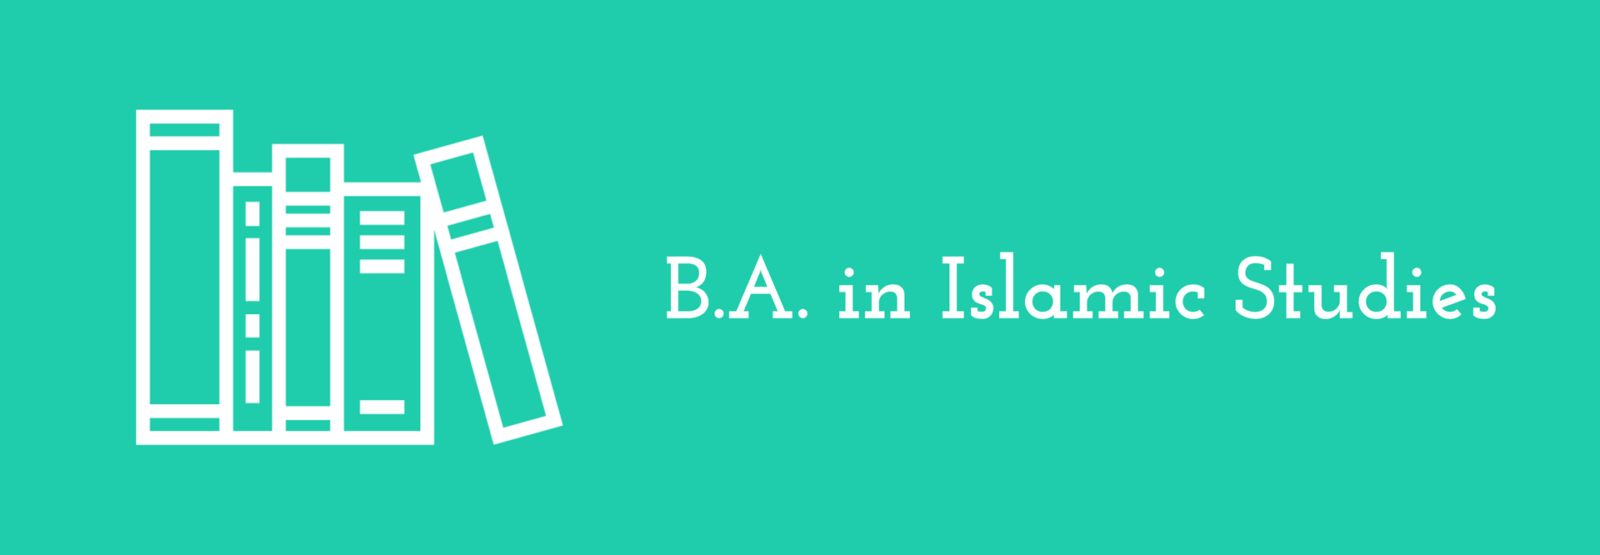 Bachelor of Arts in Islamic Studies